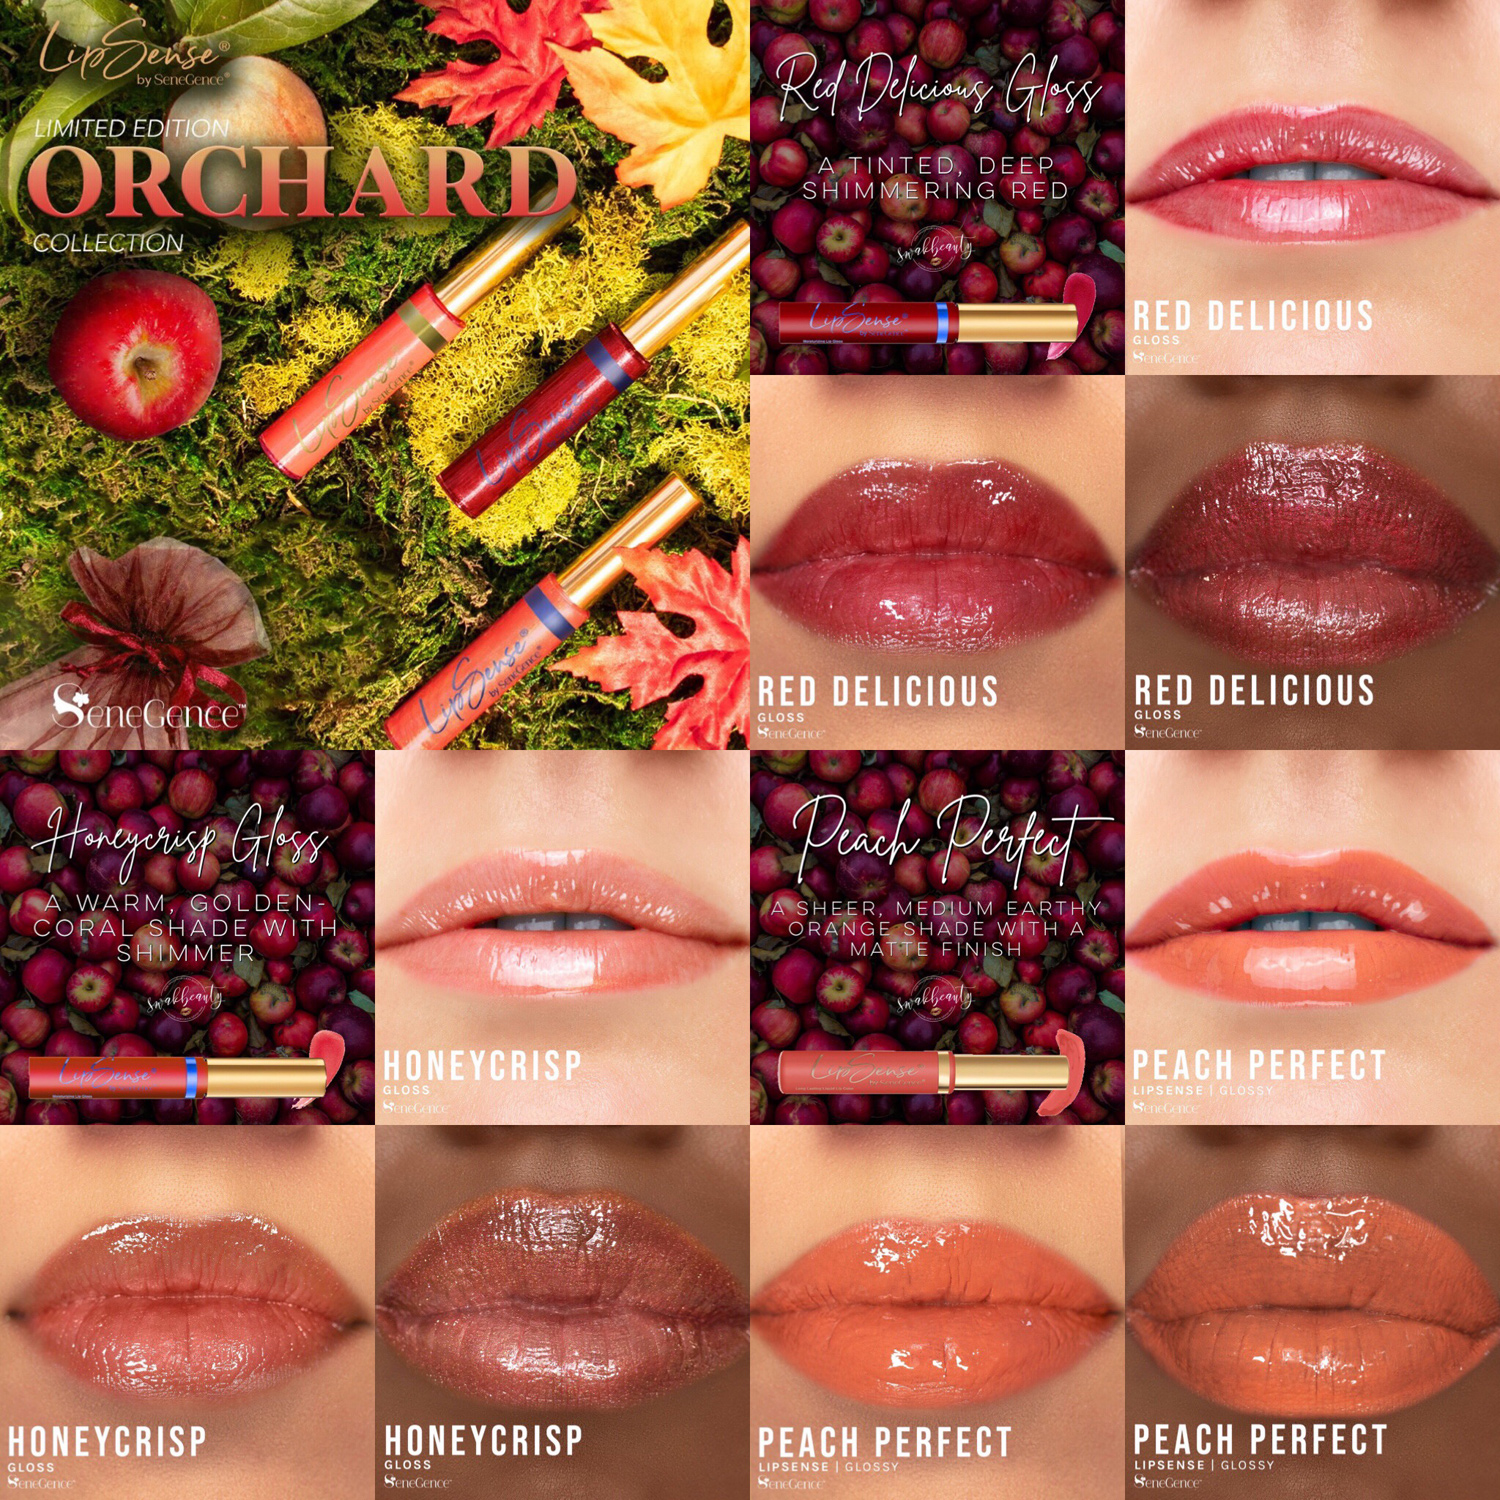 NEW Orchard Lip Collection!